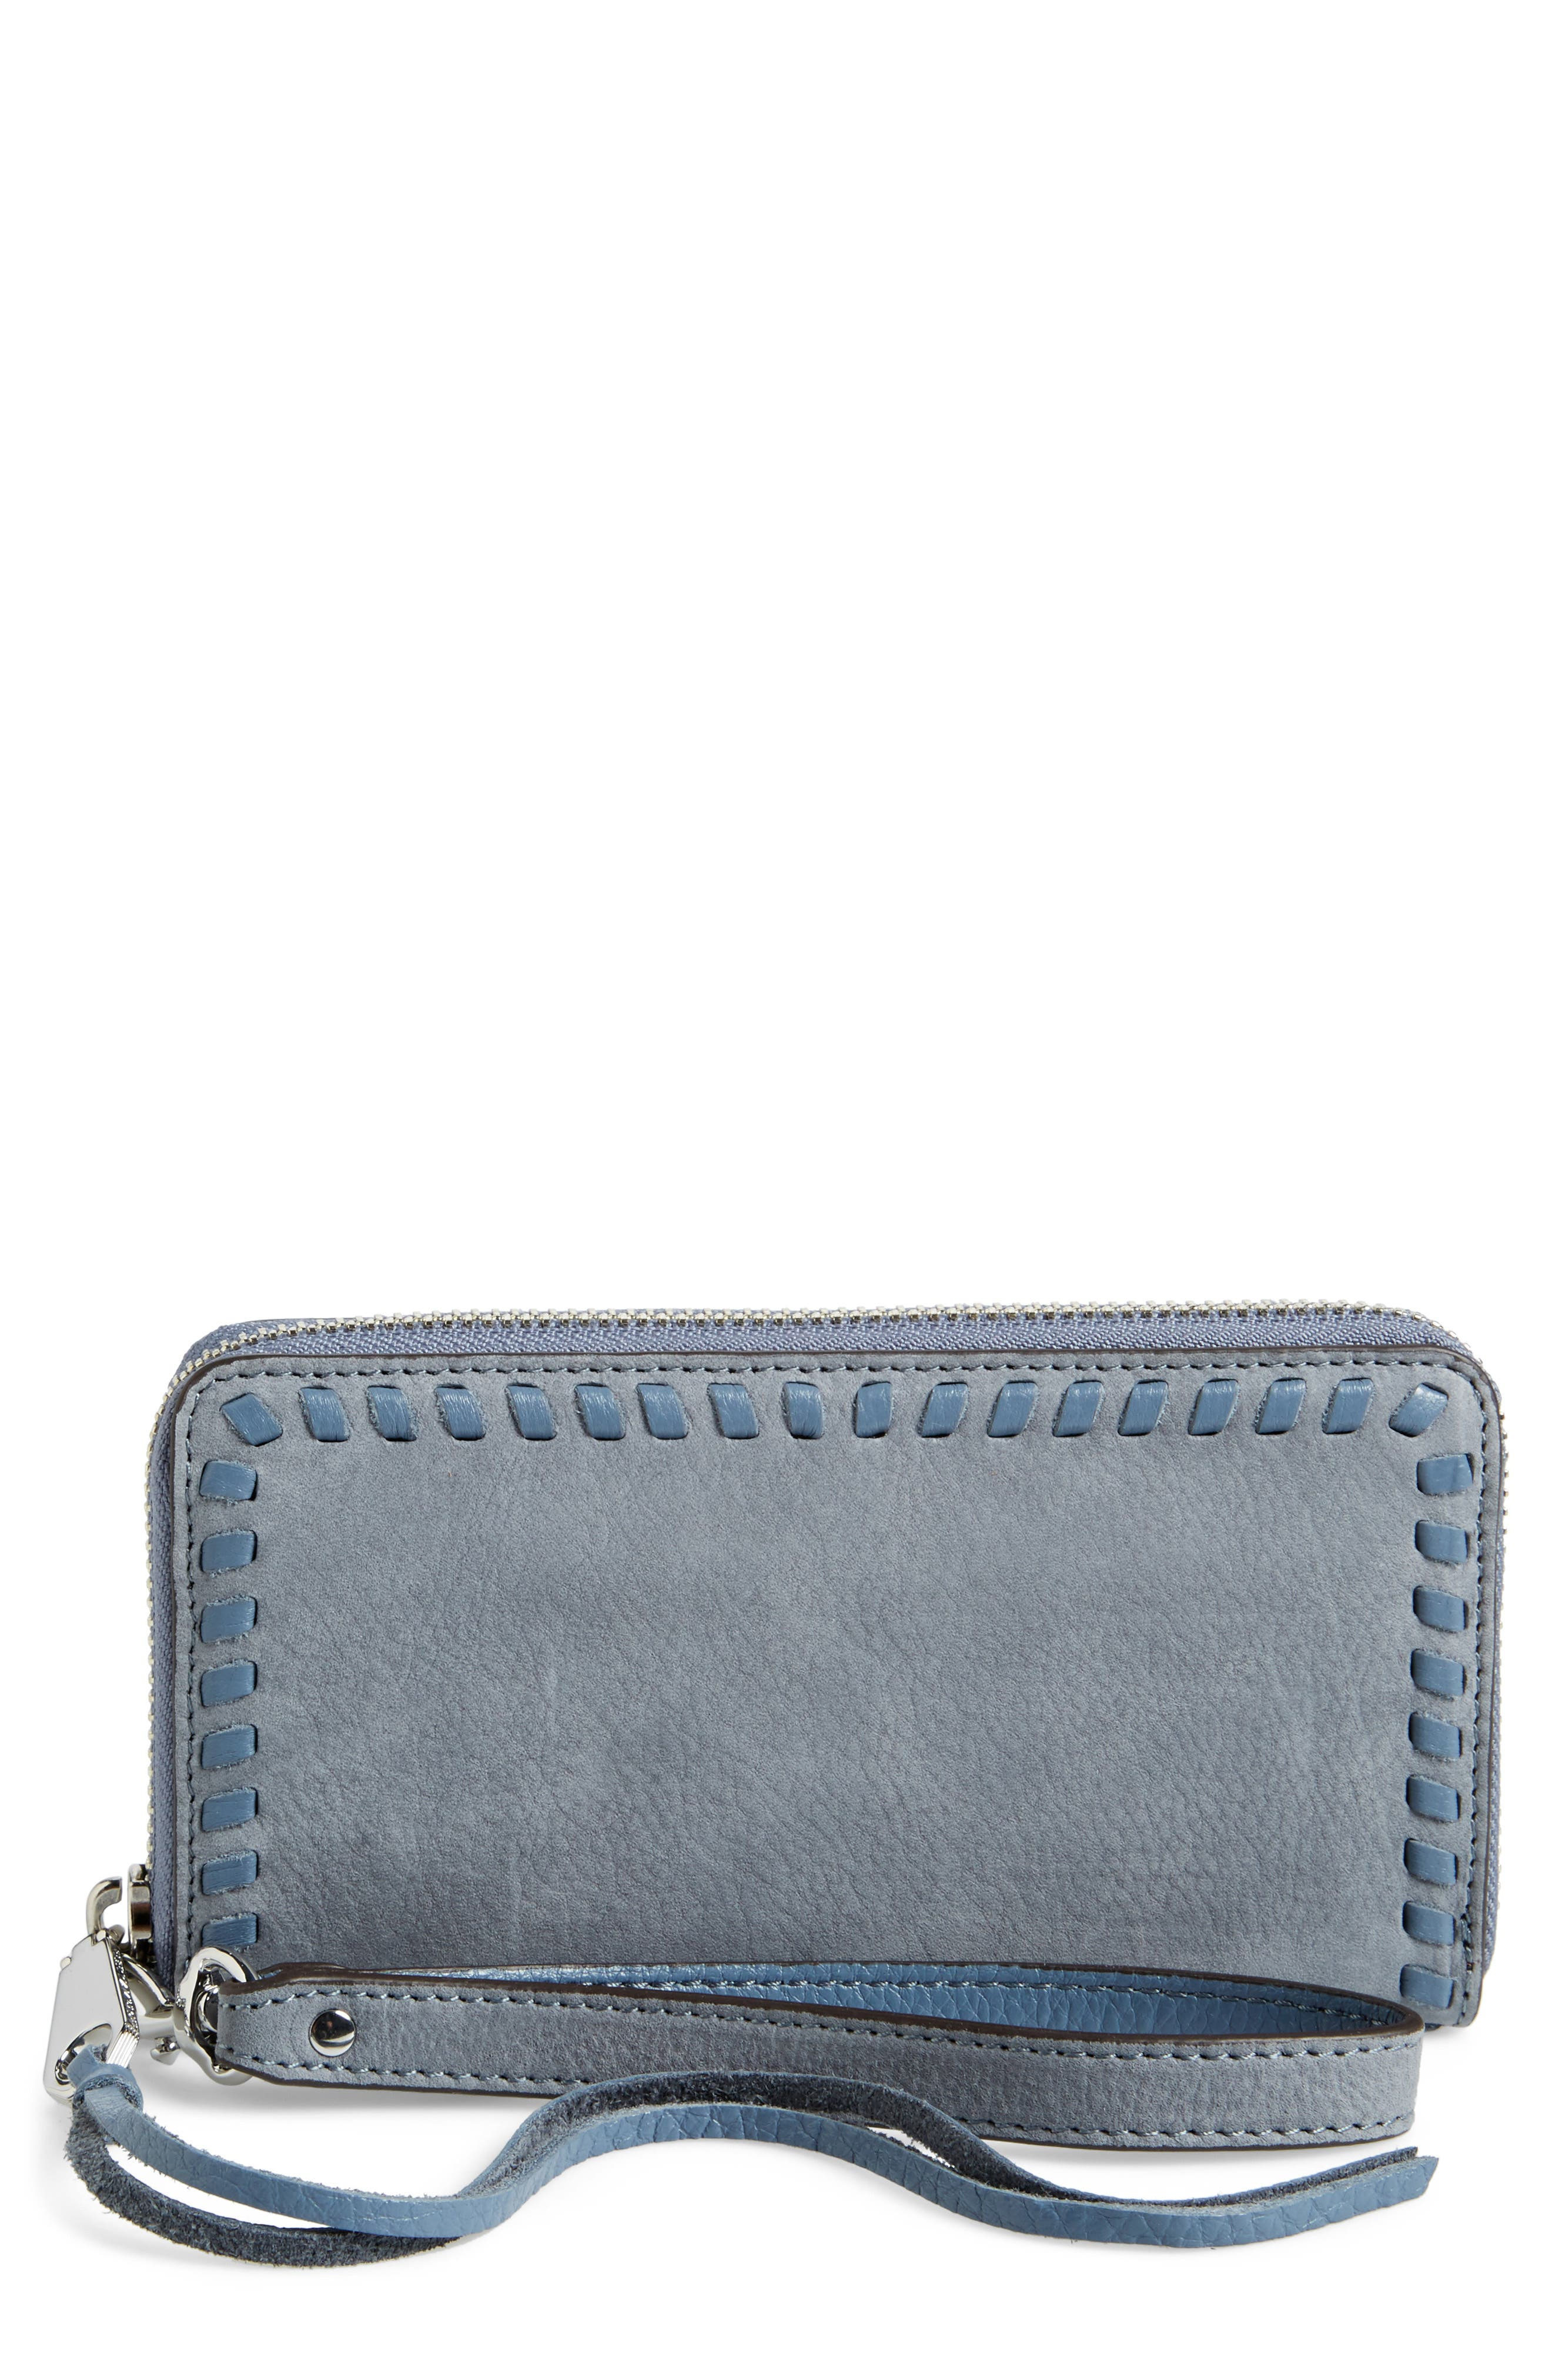 Vanity Nubuck Leather Phone Wallet,                             Main thumbnail 1, color,                             Dusty Blue/ Silver Hardware